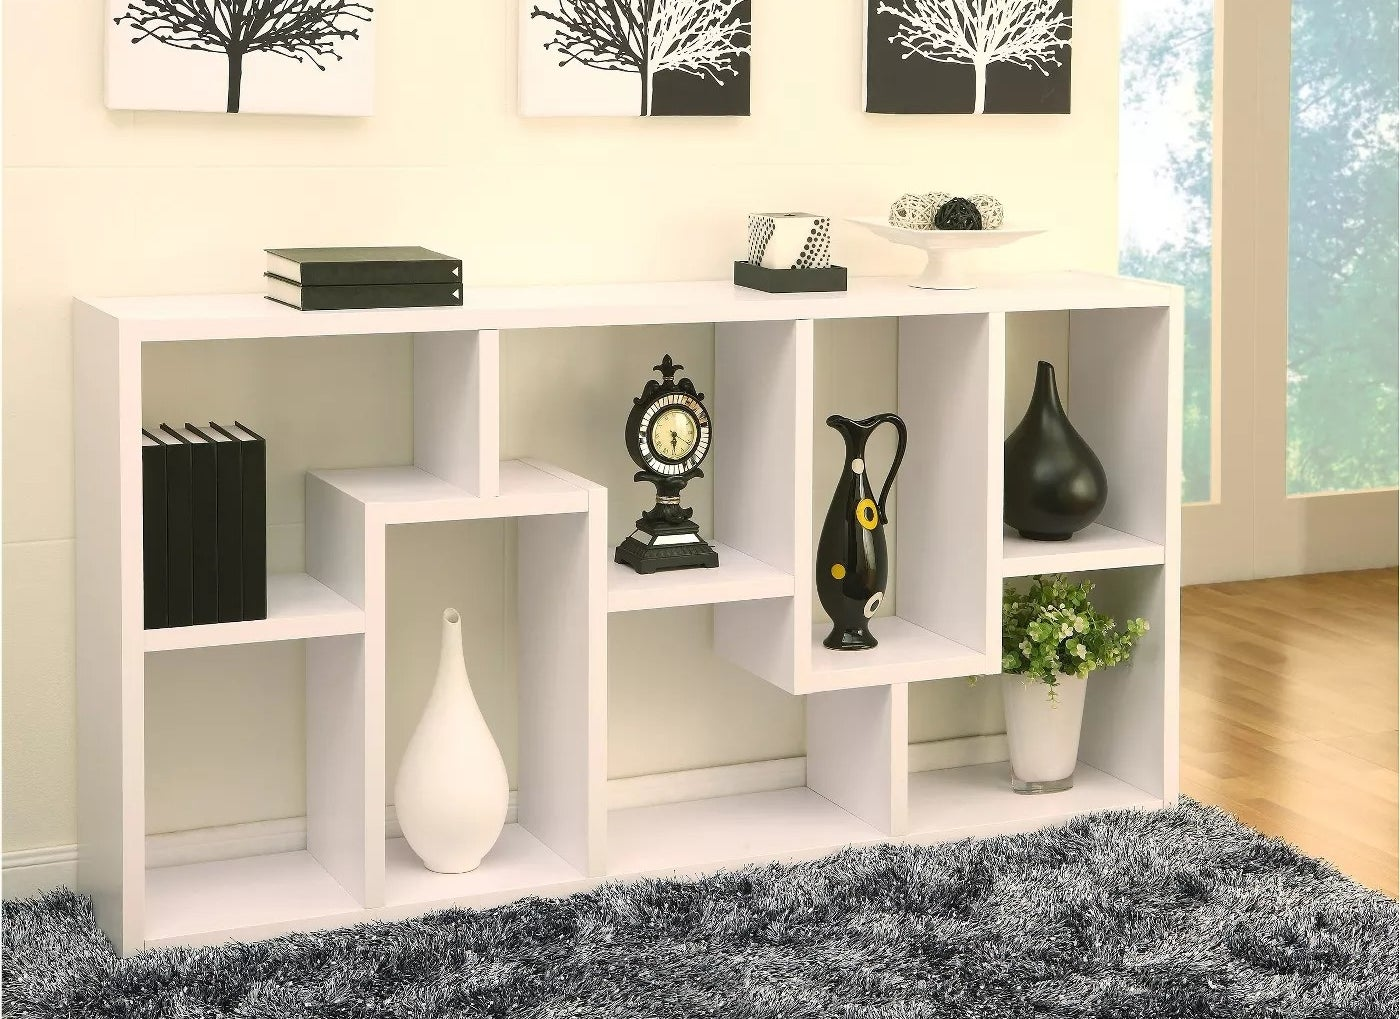 A white bookcase with geometric shelving